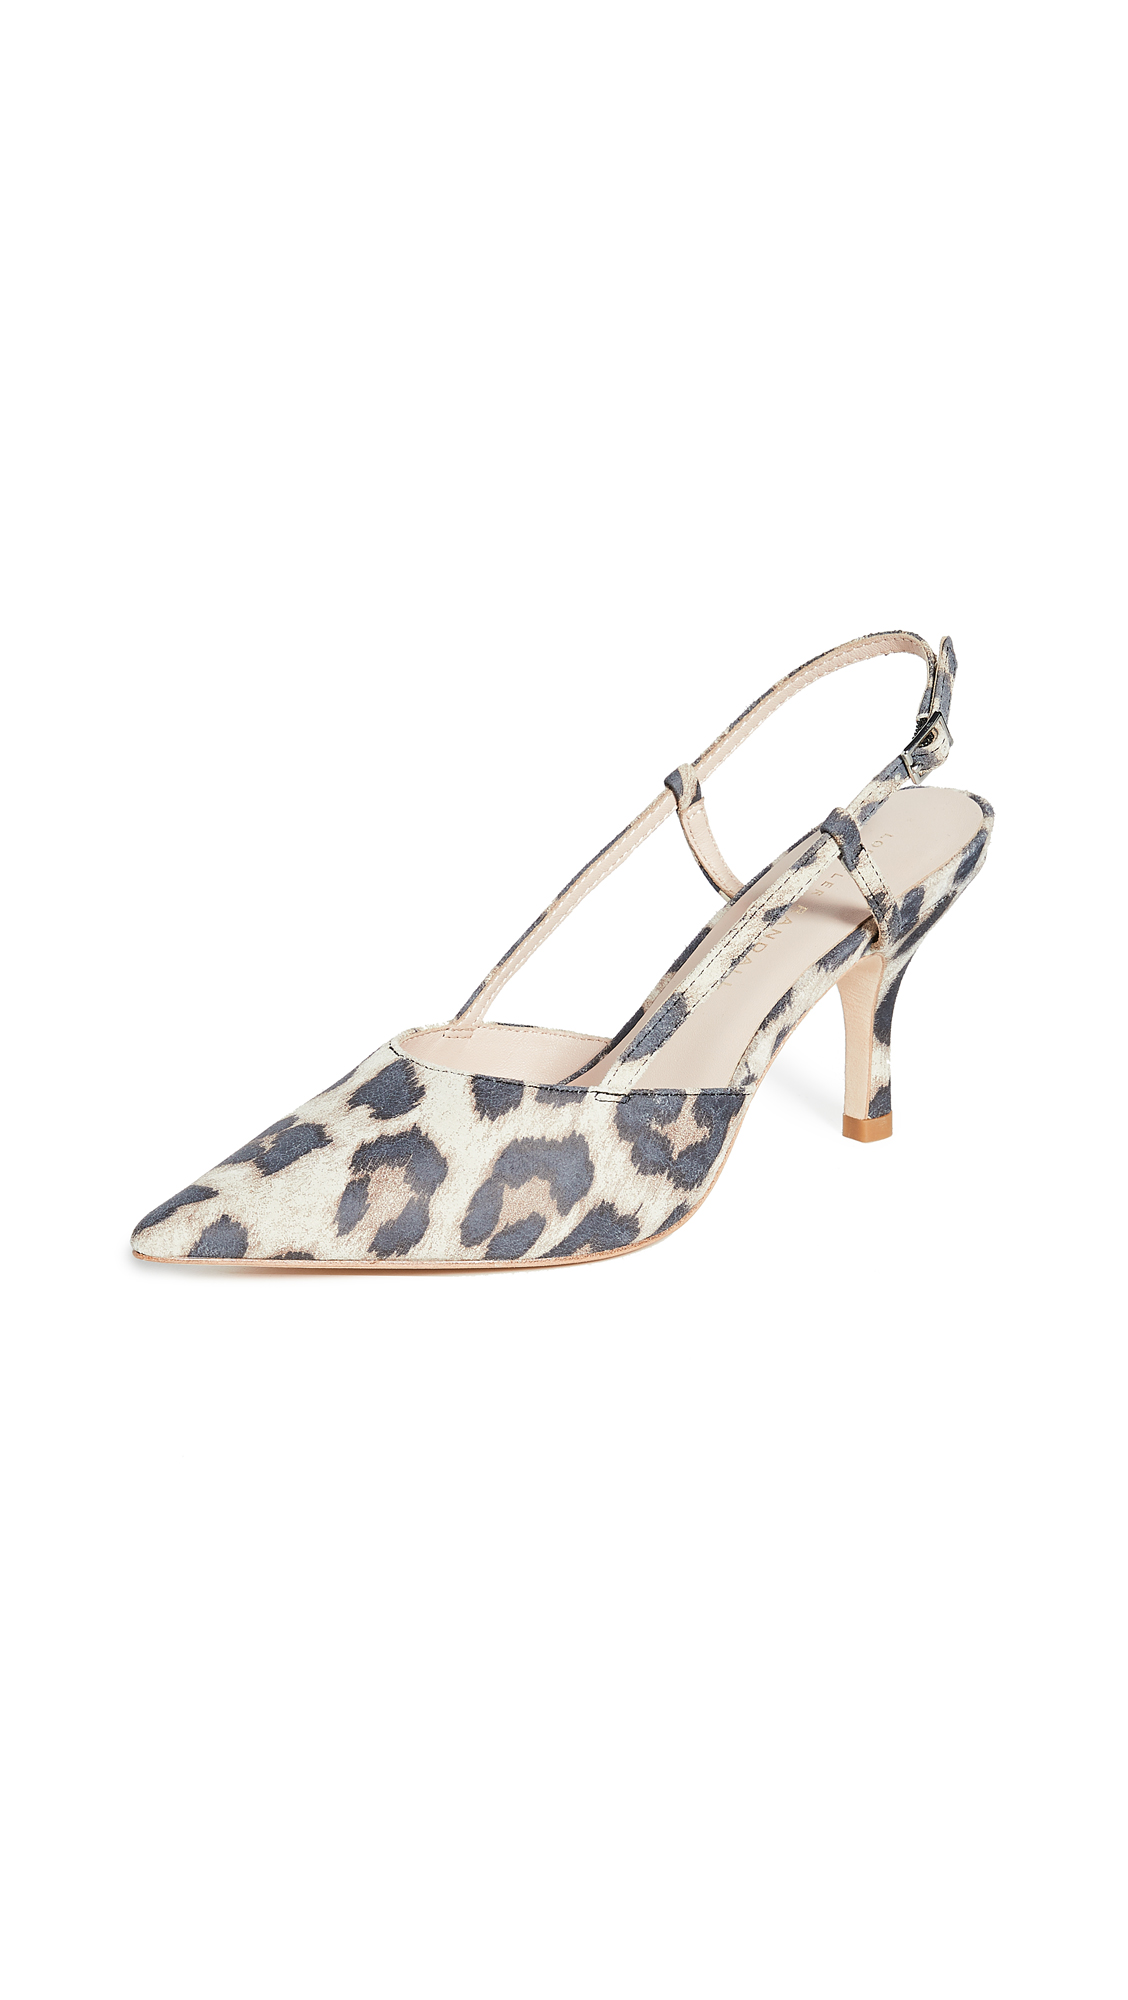 Loeffler Randall Athea Pointy Toe Slingback Pumps – 60% Off Sale